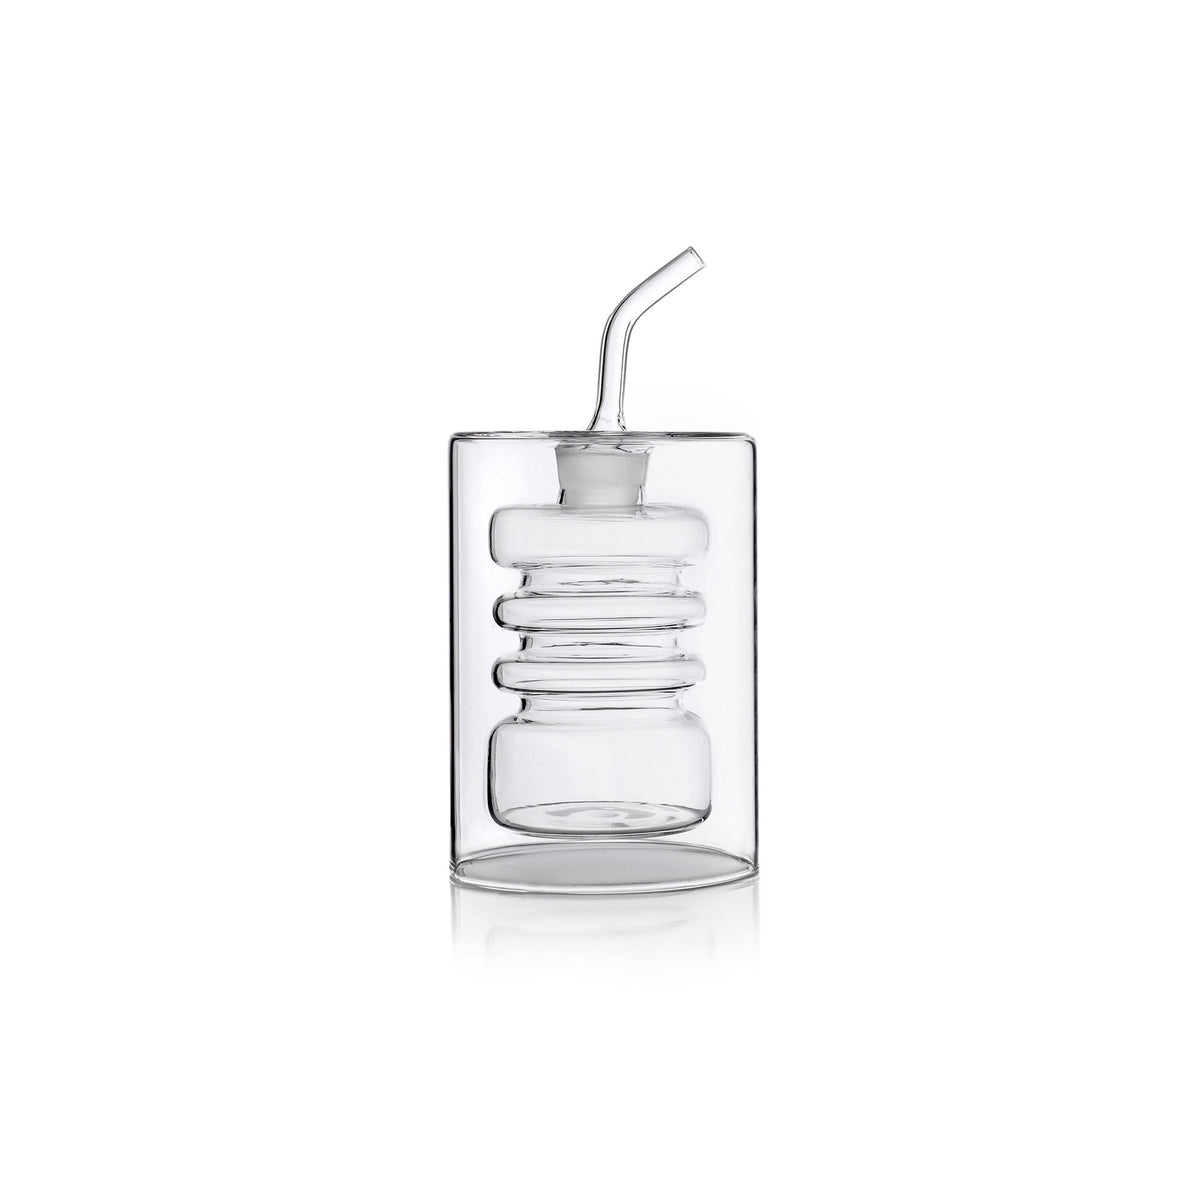 Rings Small Oil and Vinegar Cruet